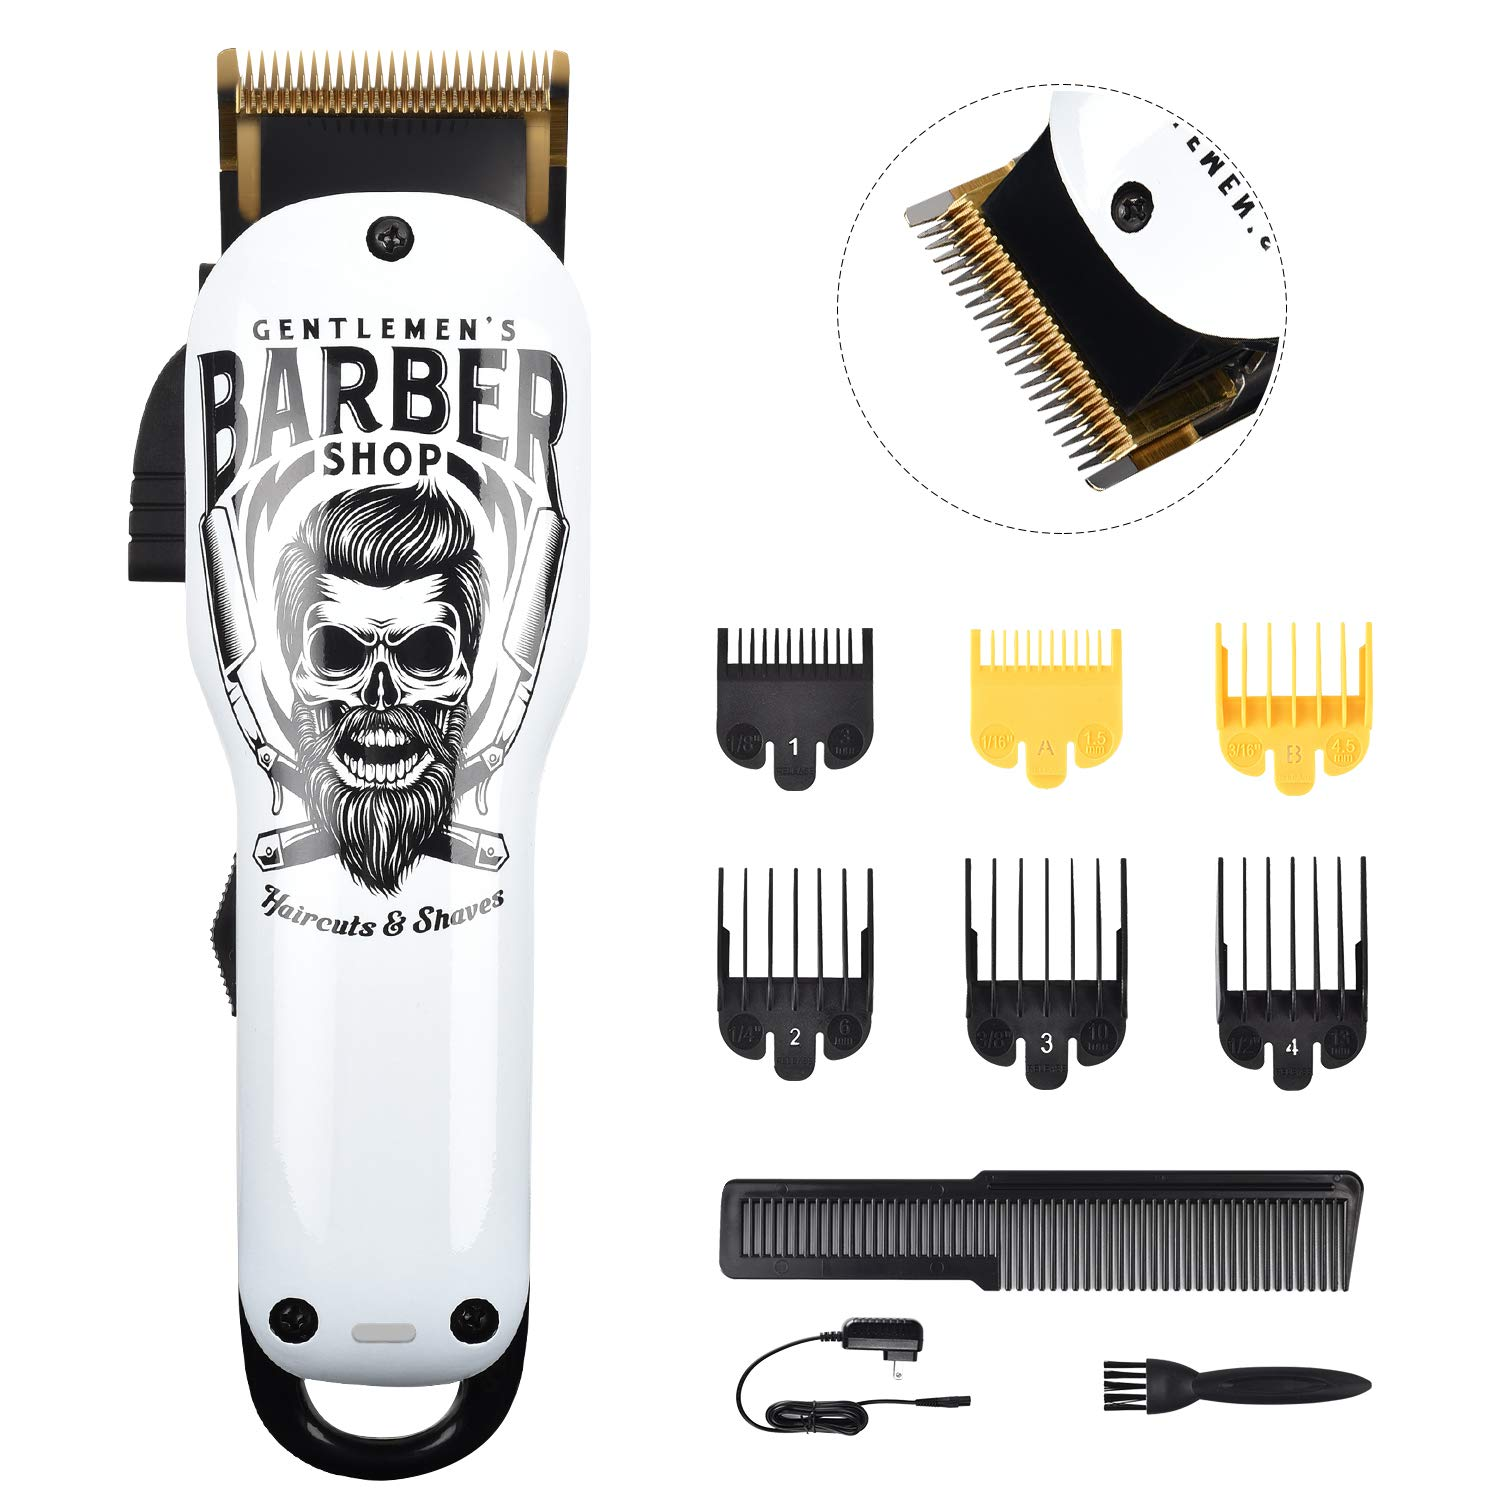 Cordless Hair Trimmer Pro Hair Clippers Beard Trimmer for Men Haircut Kit Cordless USB Rechargeable Barber Electric Shavers Hair Removal with 2000mAh Lithium Ion,Guide Combs (Trimmer) Price: $39.99